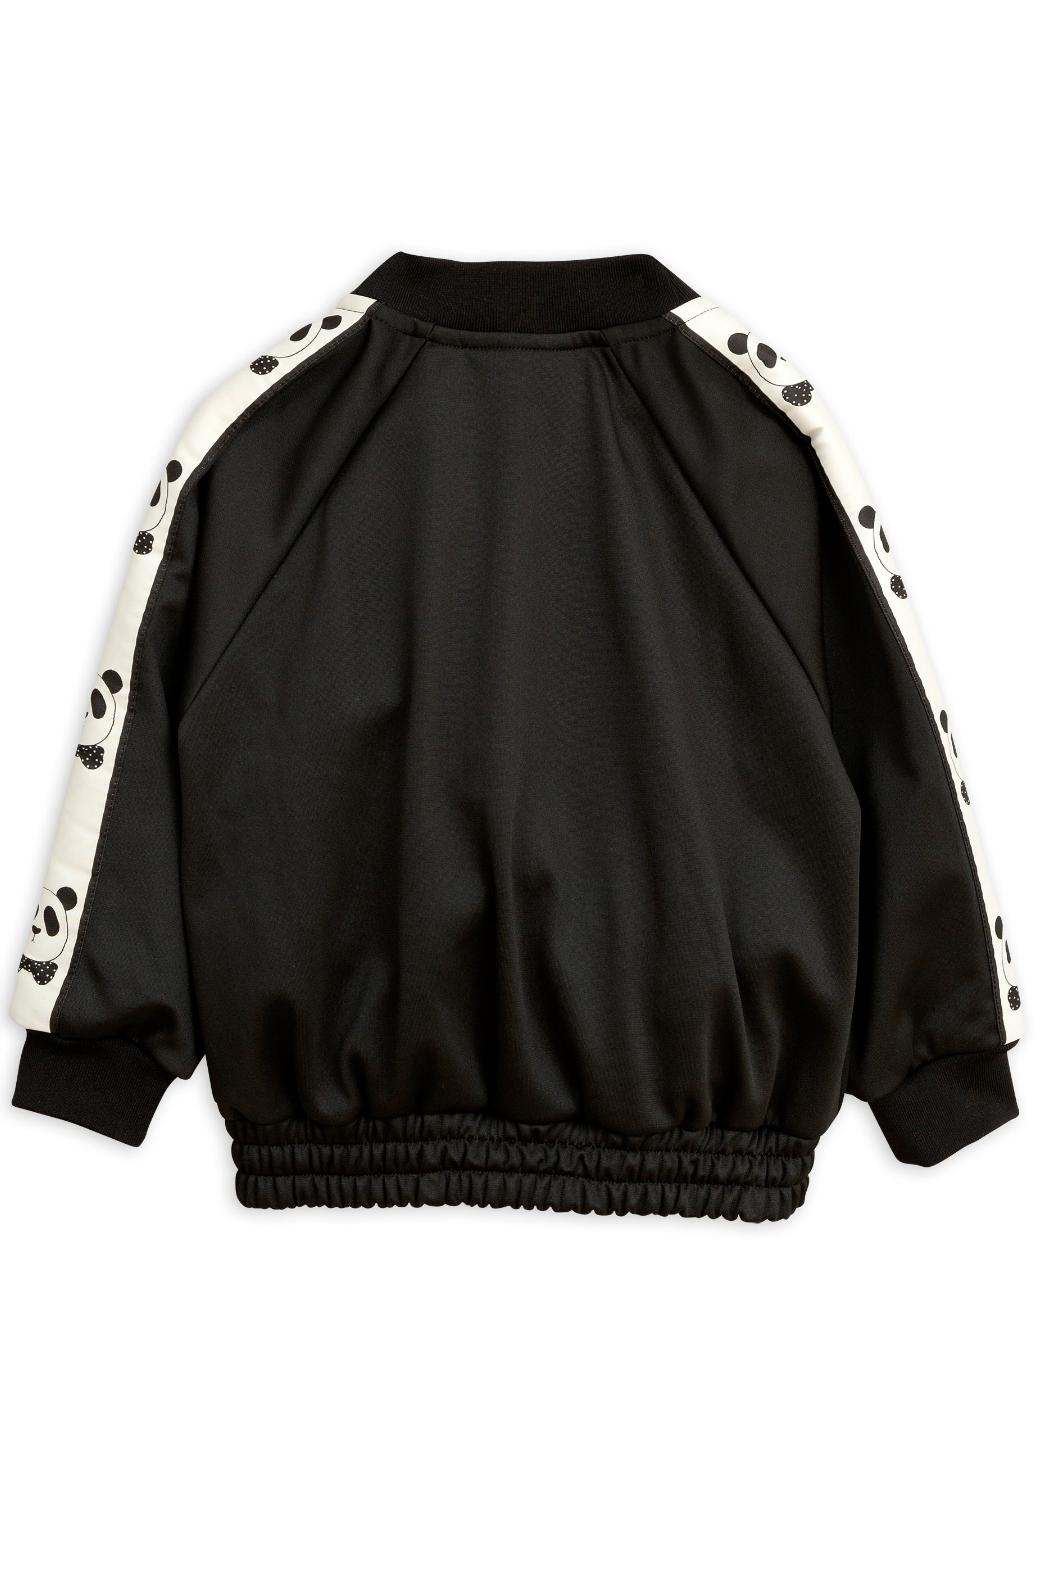 Mini Rodini Black Panda Jacket - Side Cropped Image